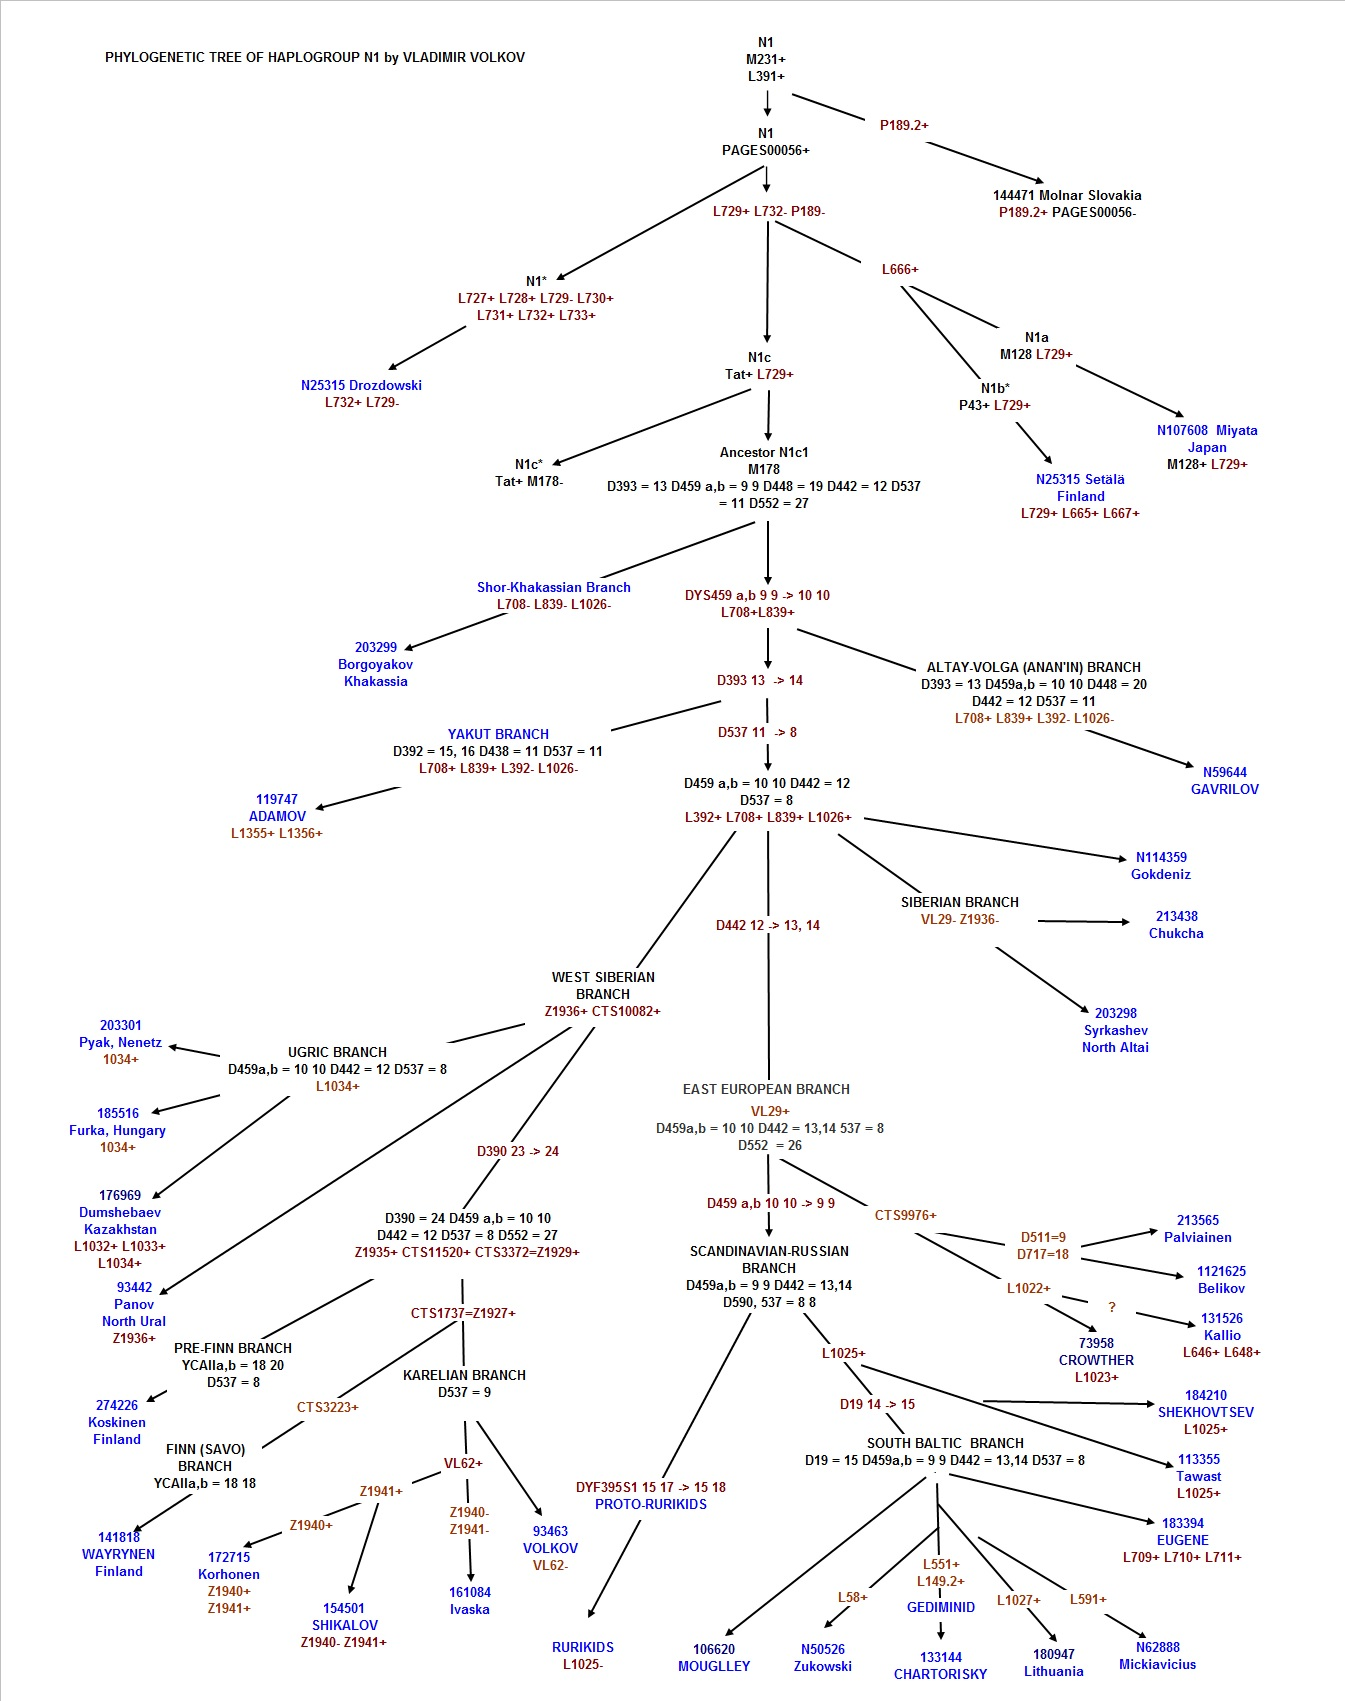 PHYLOGENETIC TREE OF HAPLOGROUP N